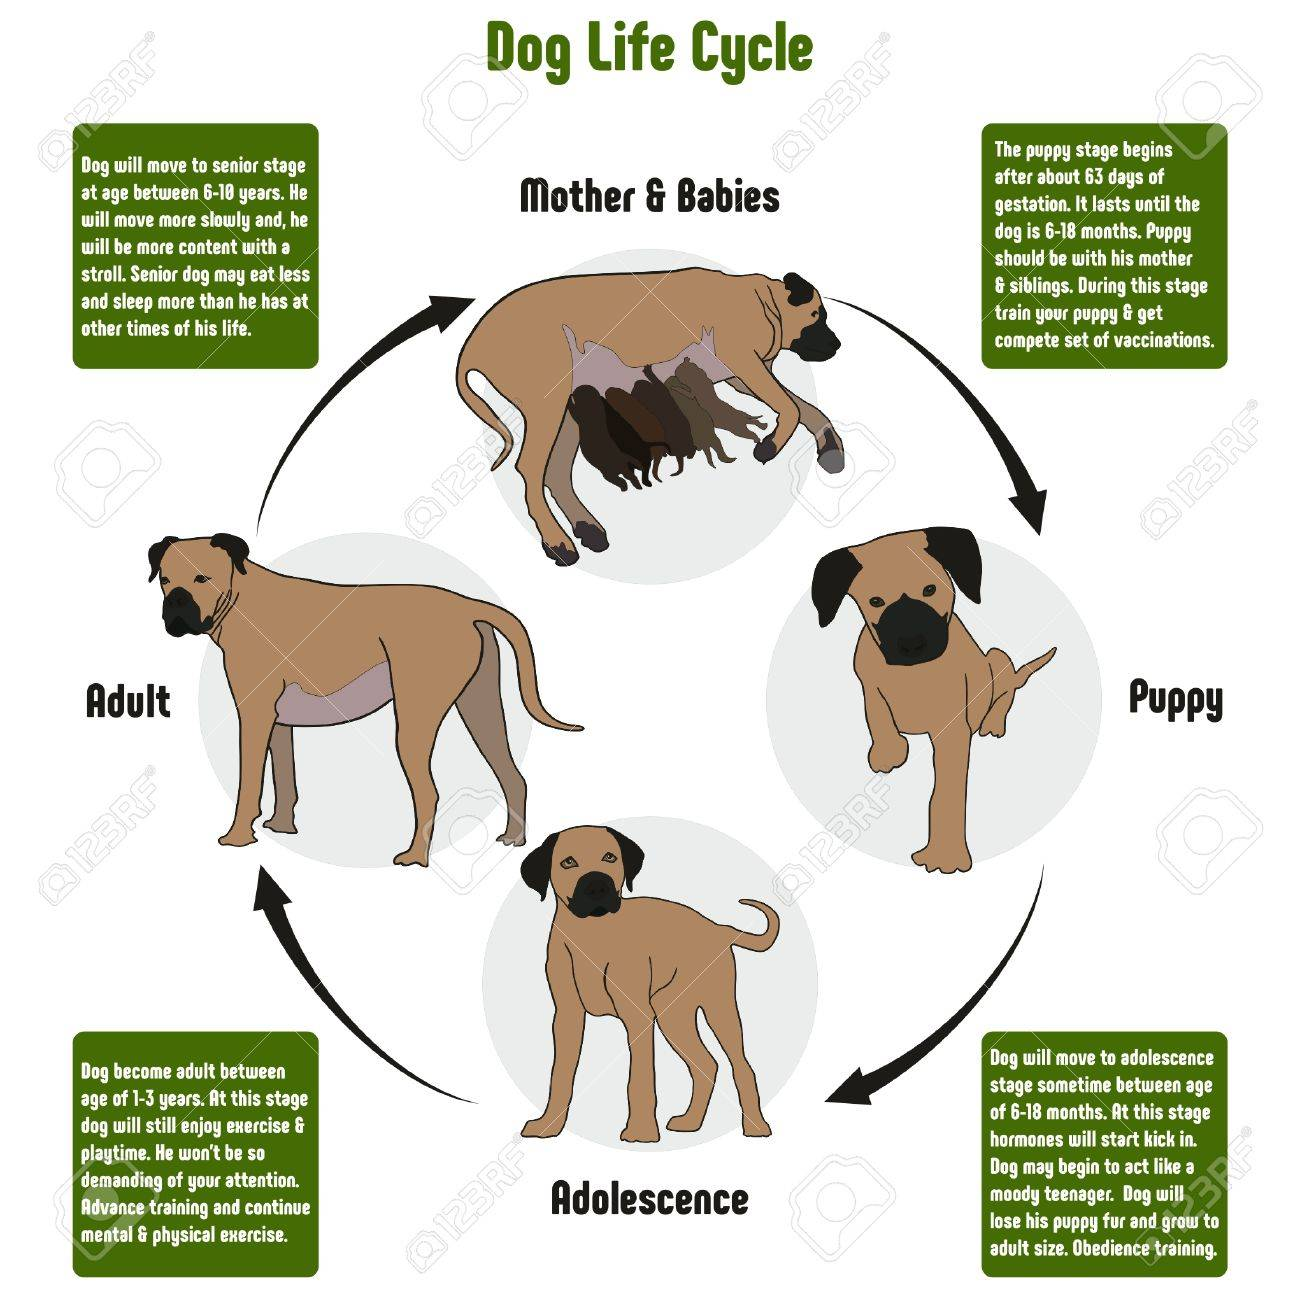 Dog life cycle diagram with all stages including birth mother dog life cycle diagram with all stages including birth mother and babies puppy adolescence adult simple pooptronica Image collections